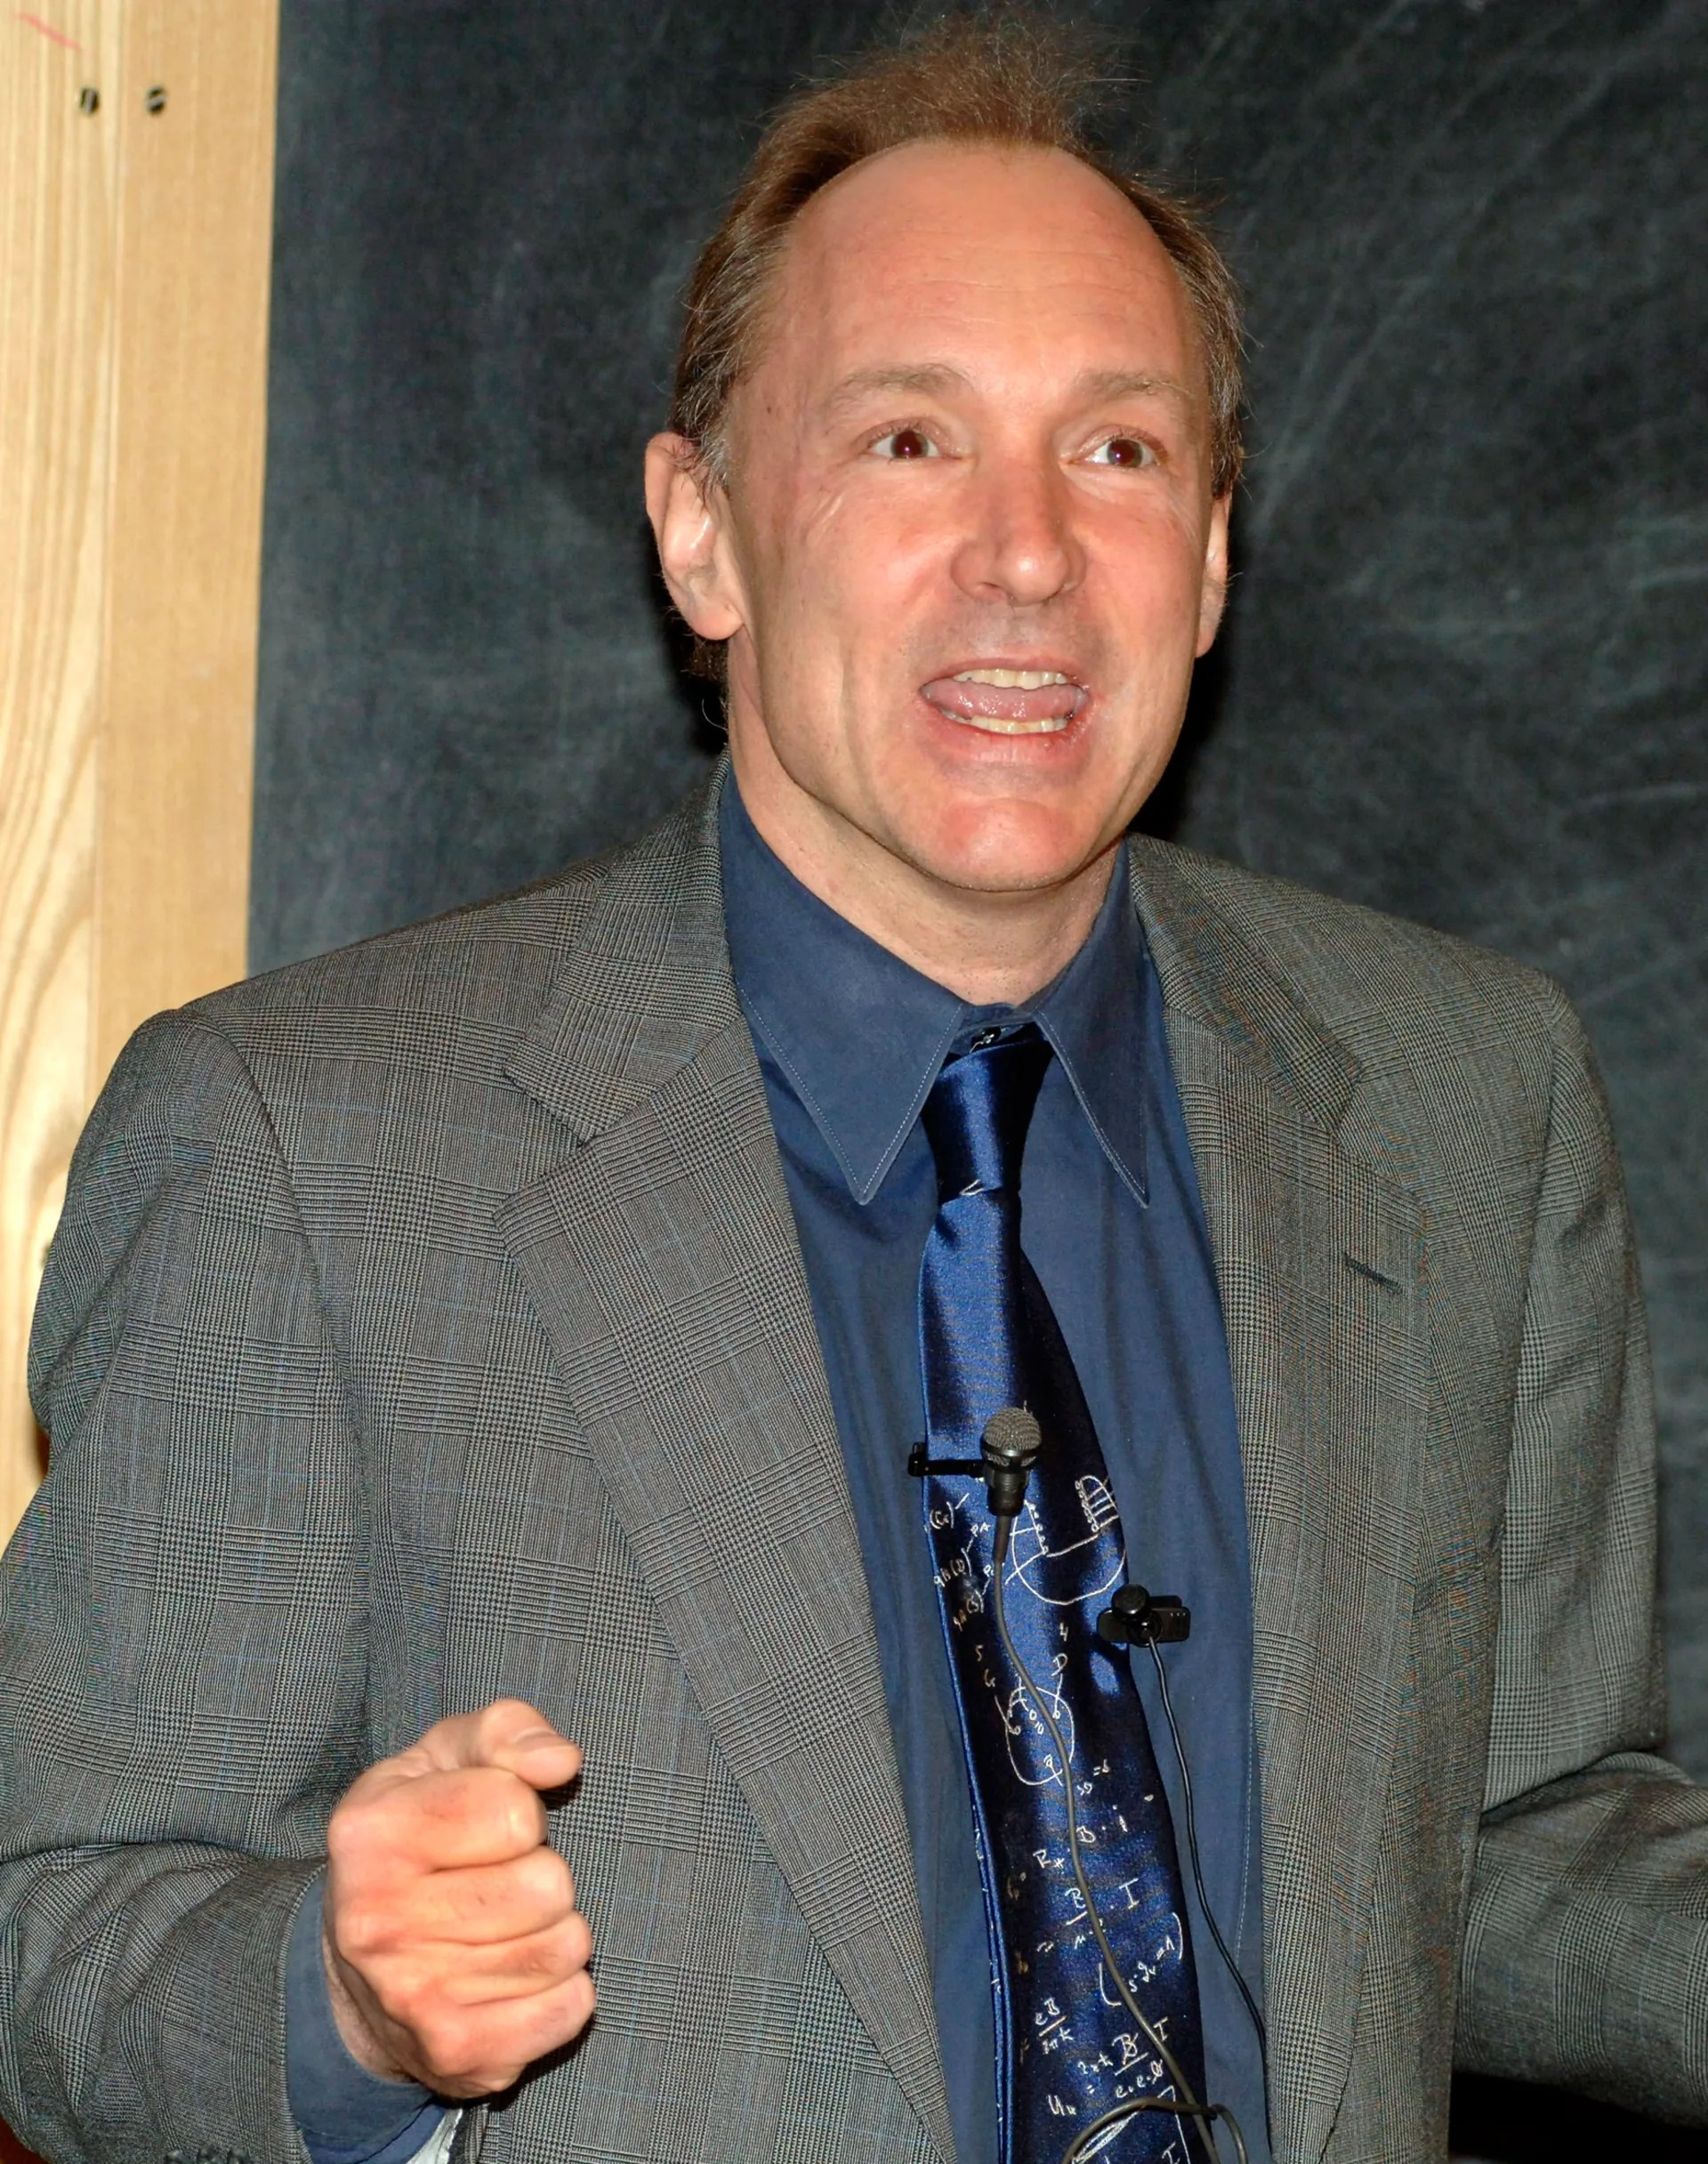 Tim Berners Lee Facts